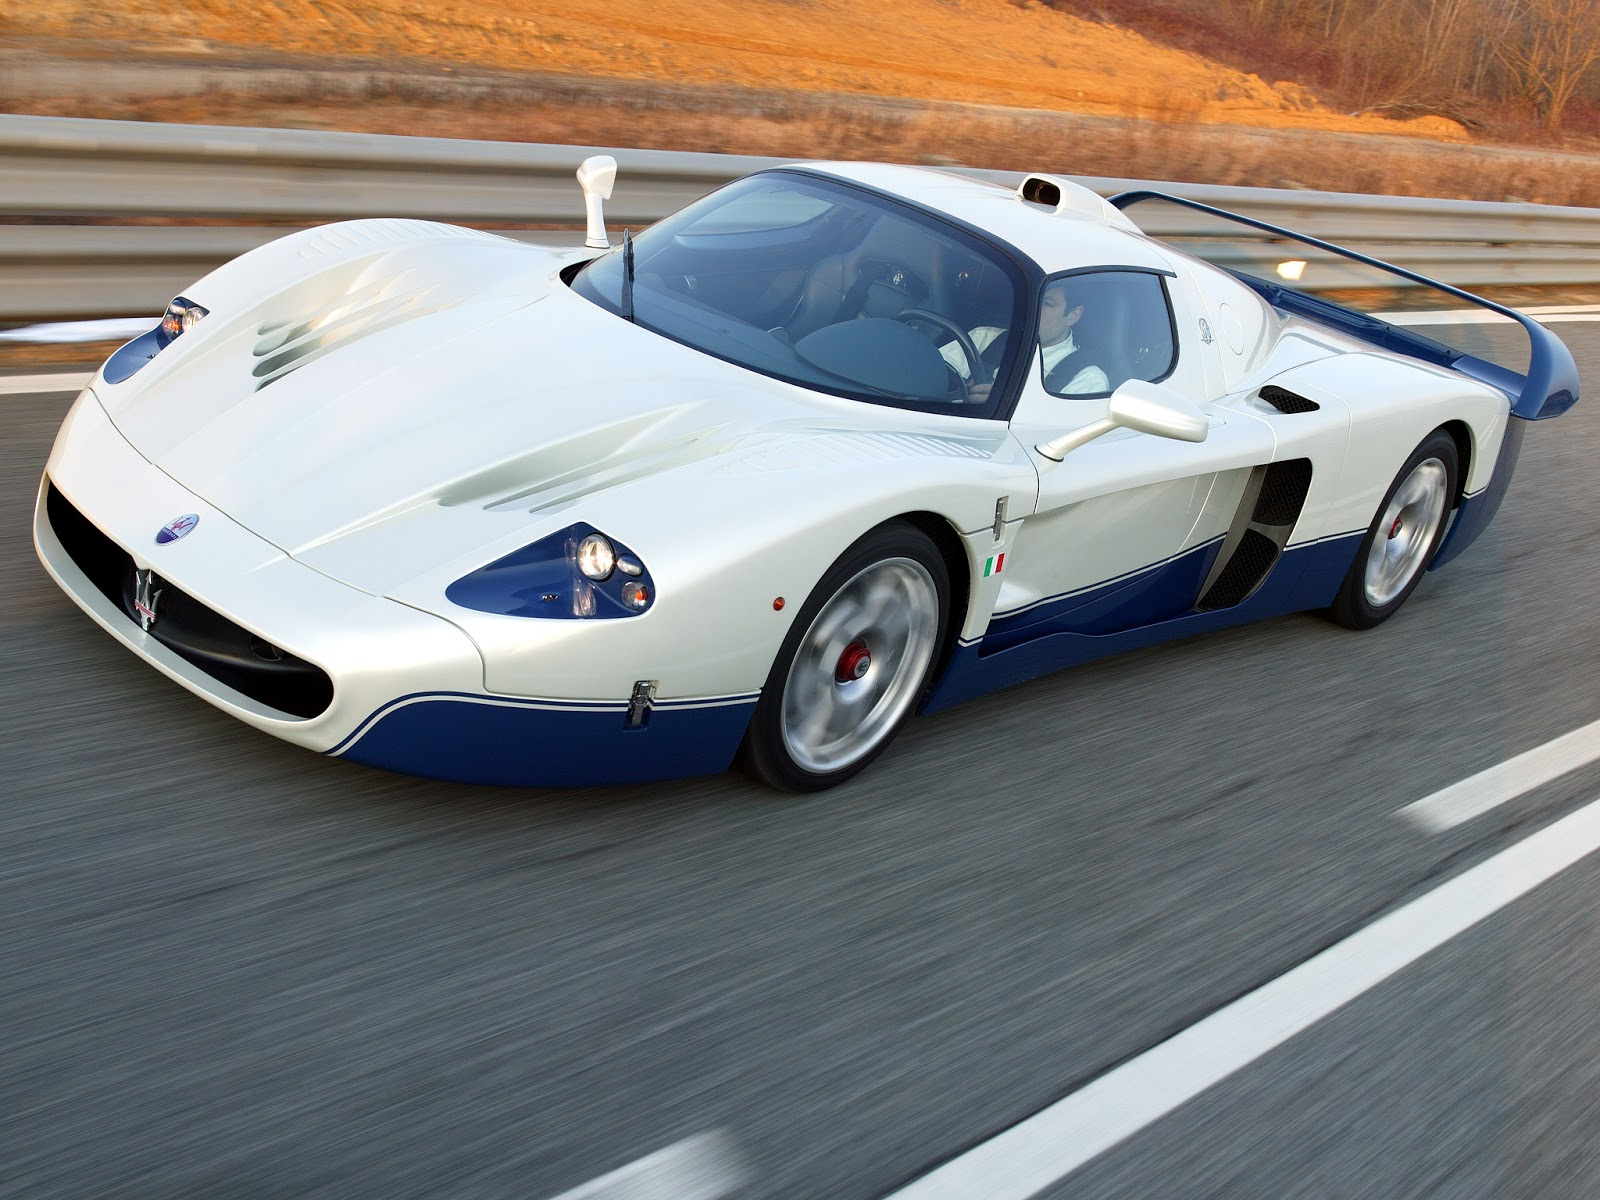 3dtuning of maserati mc12 coupe 2004 unique on line car configurator for more. Black Bedroom Furniture Sets. Home Design Ideas